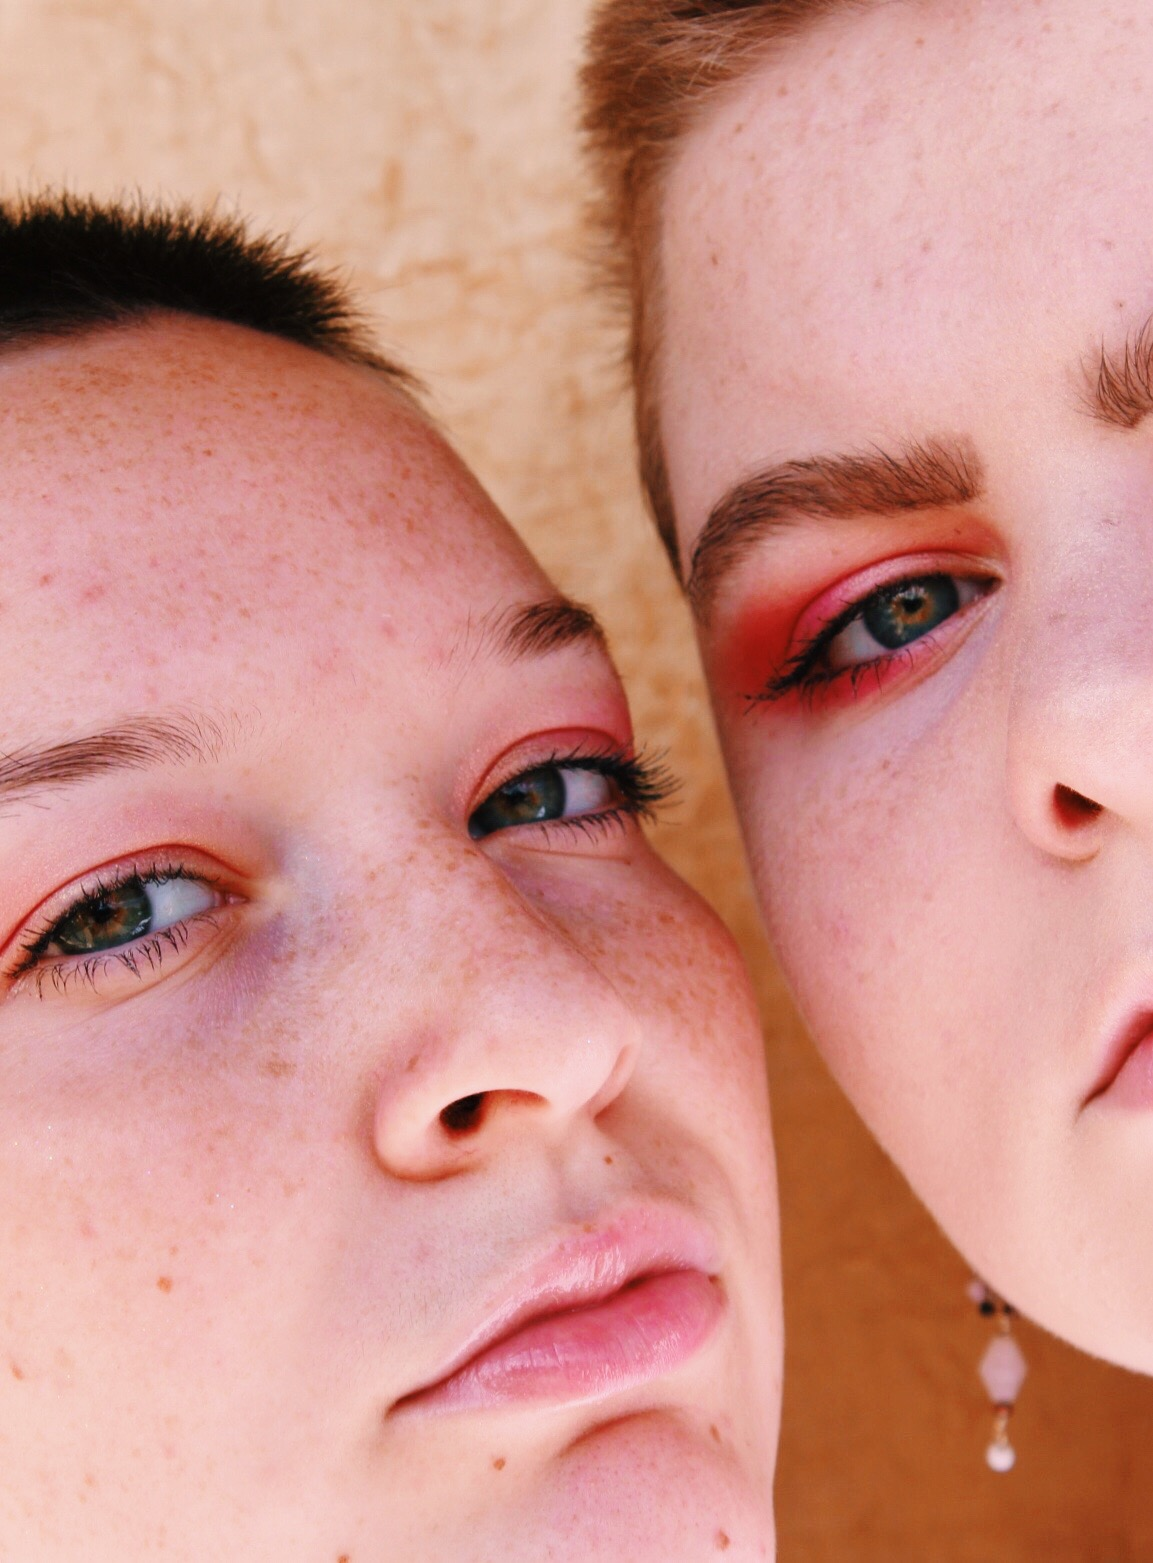 two girls with closeup